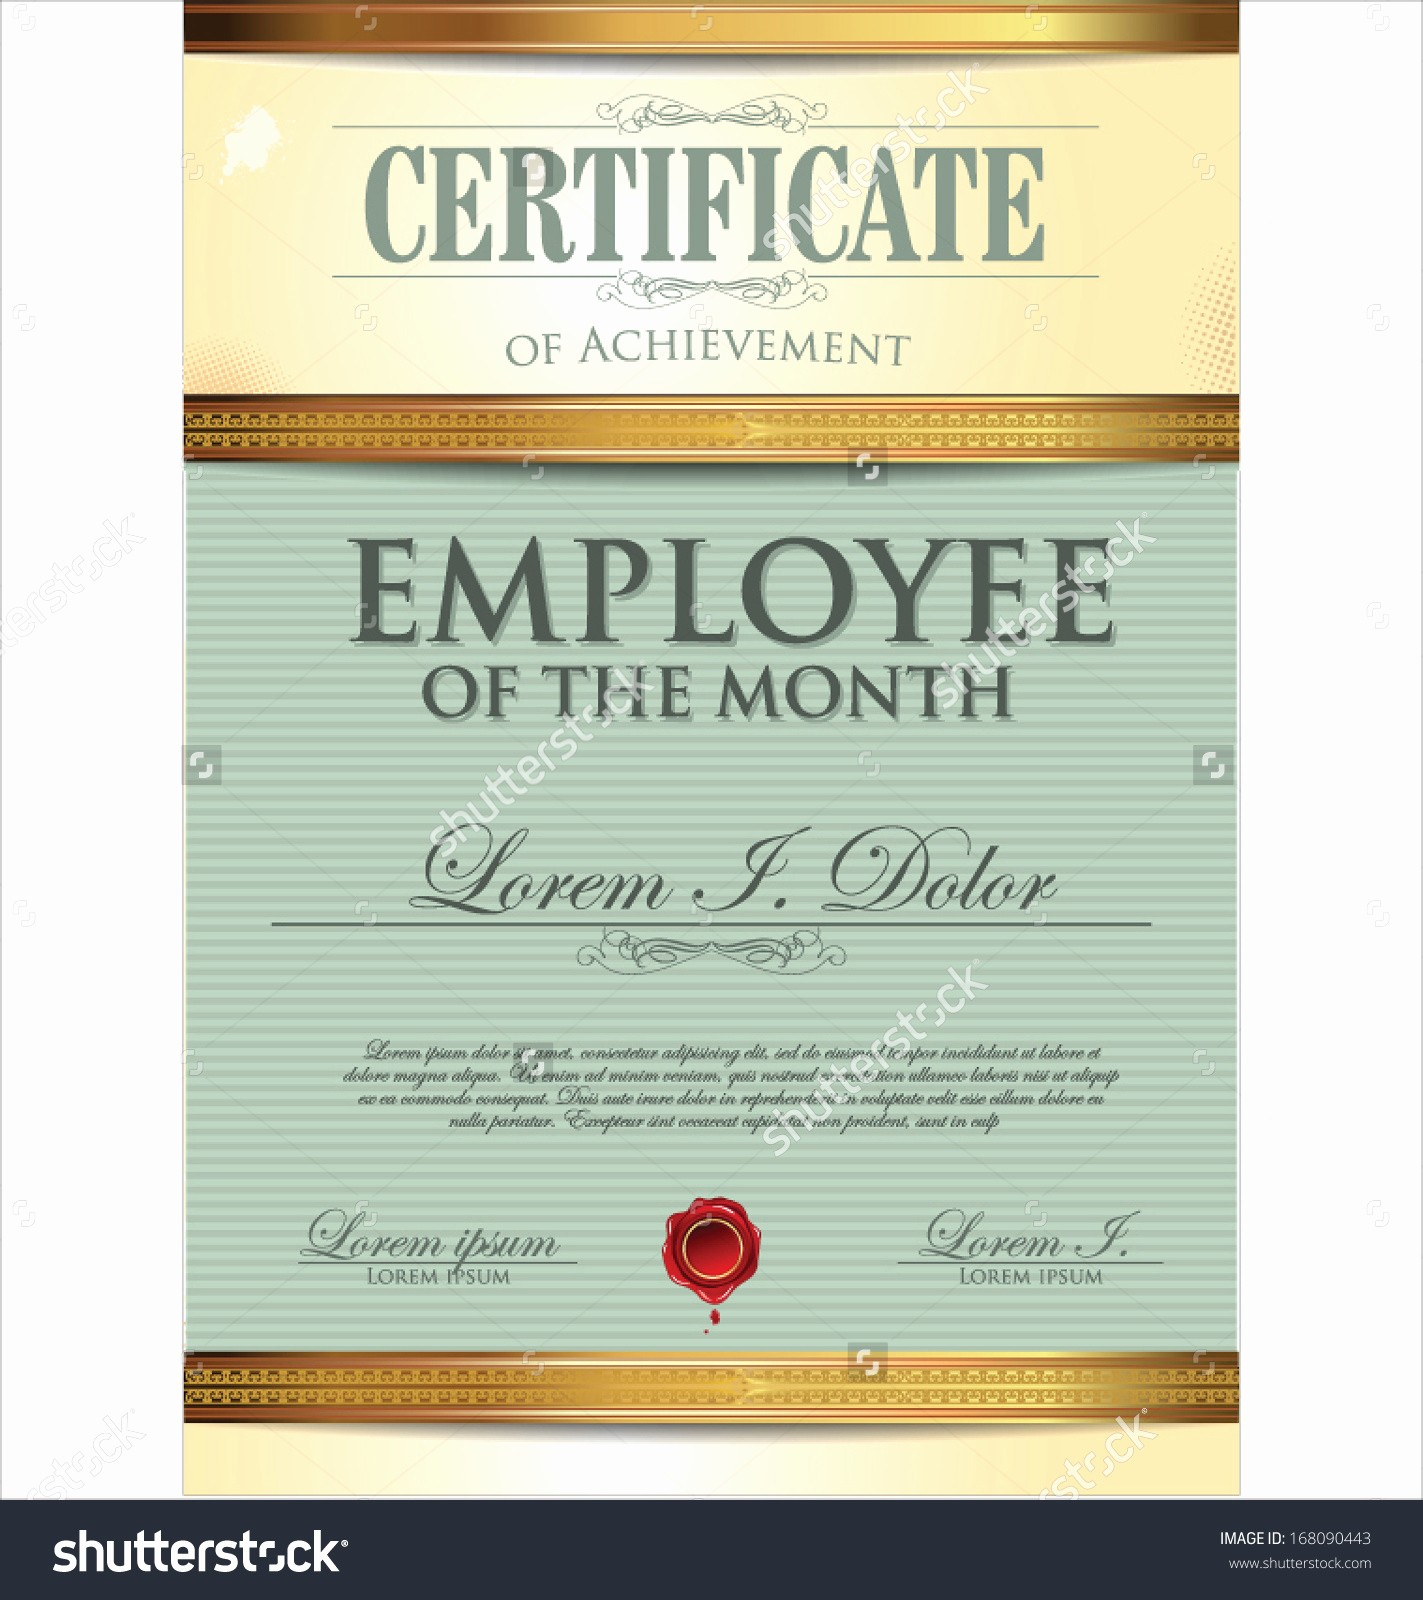 Employee Of the Month Free Awesome Free Employee the Month Certificate Template